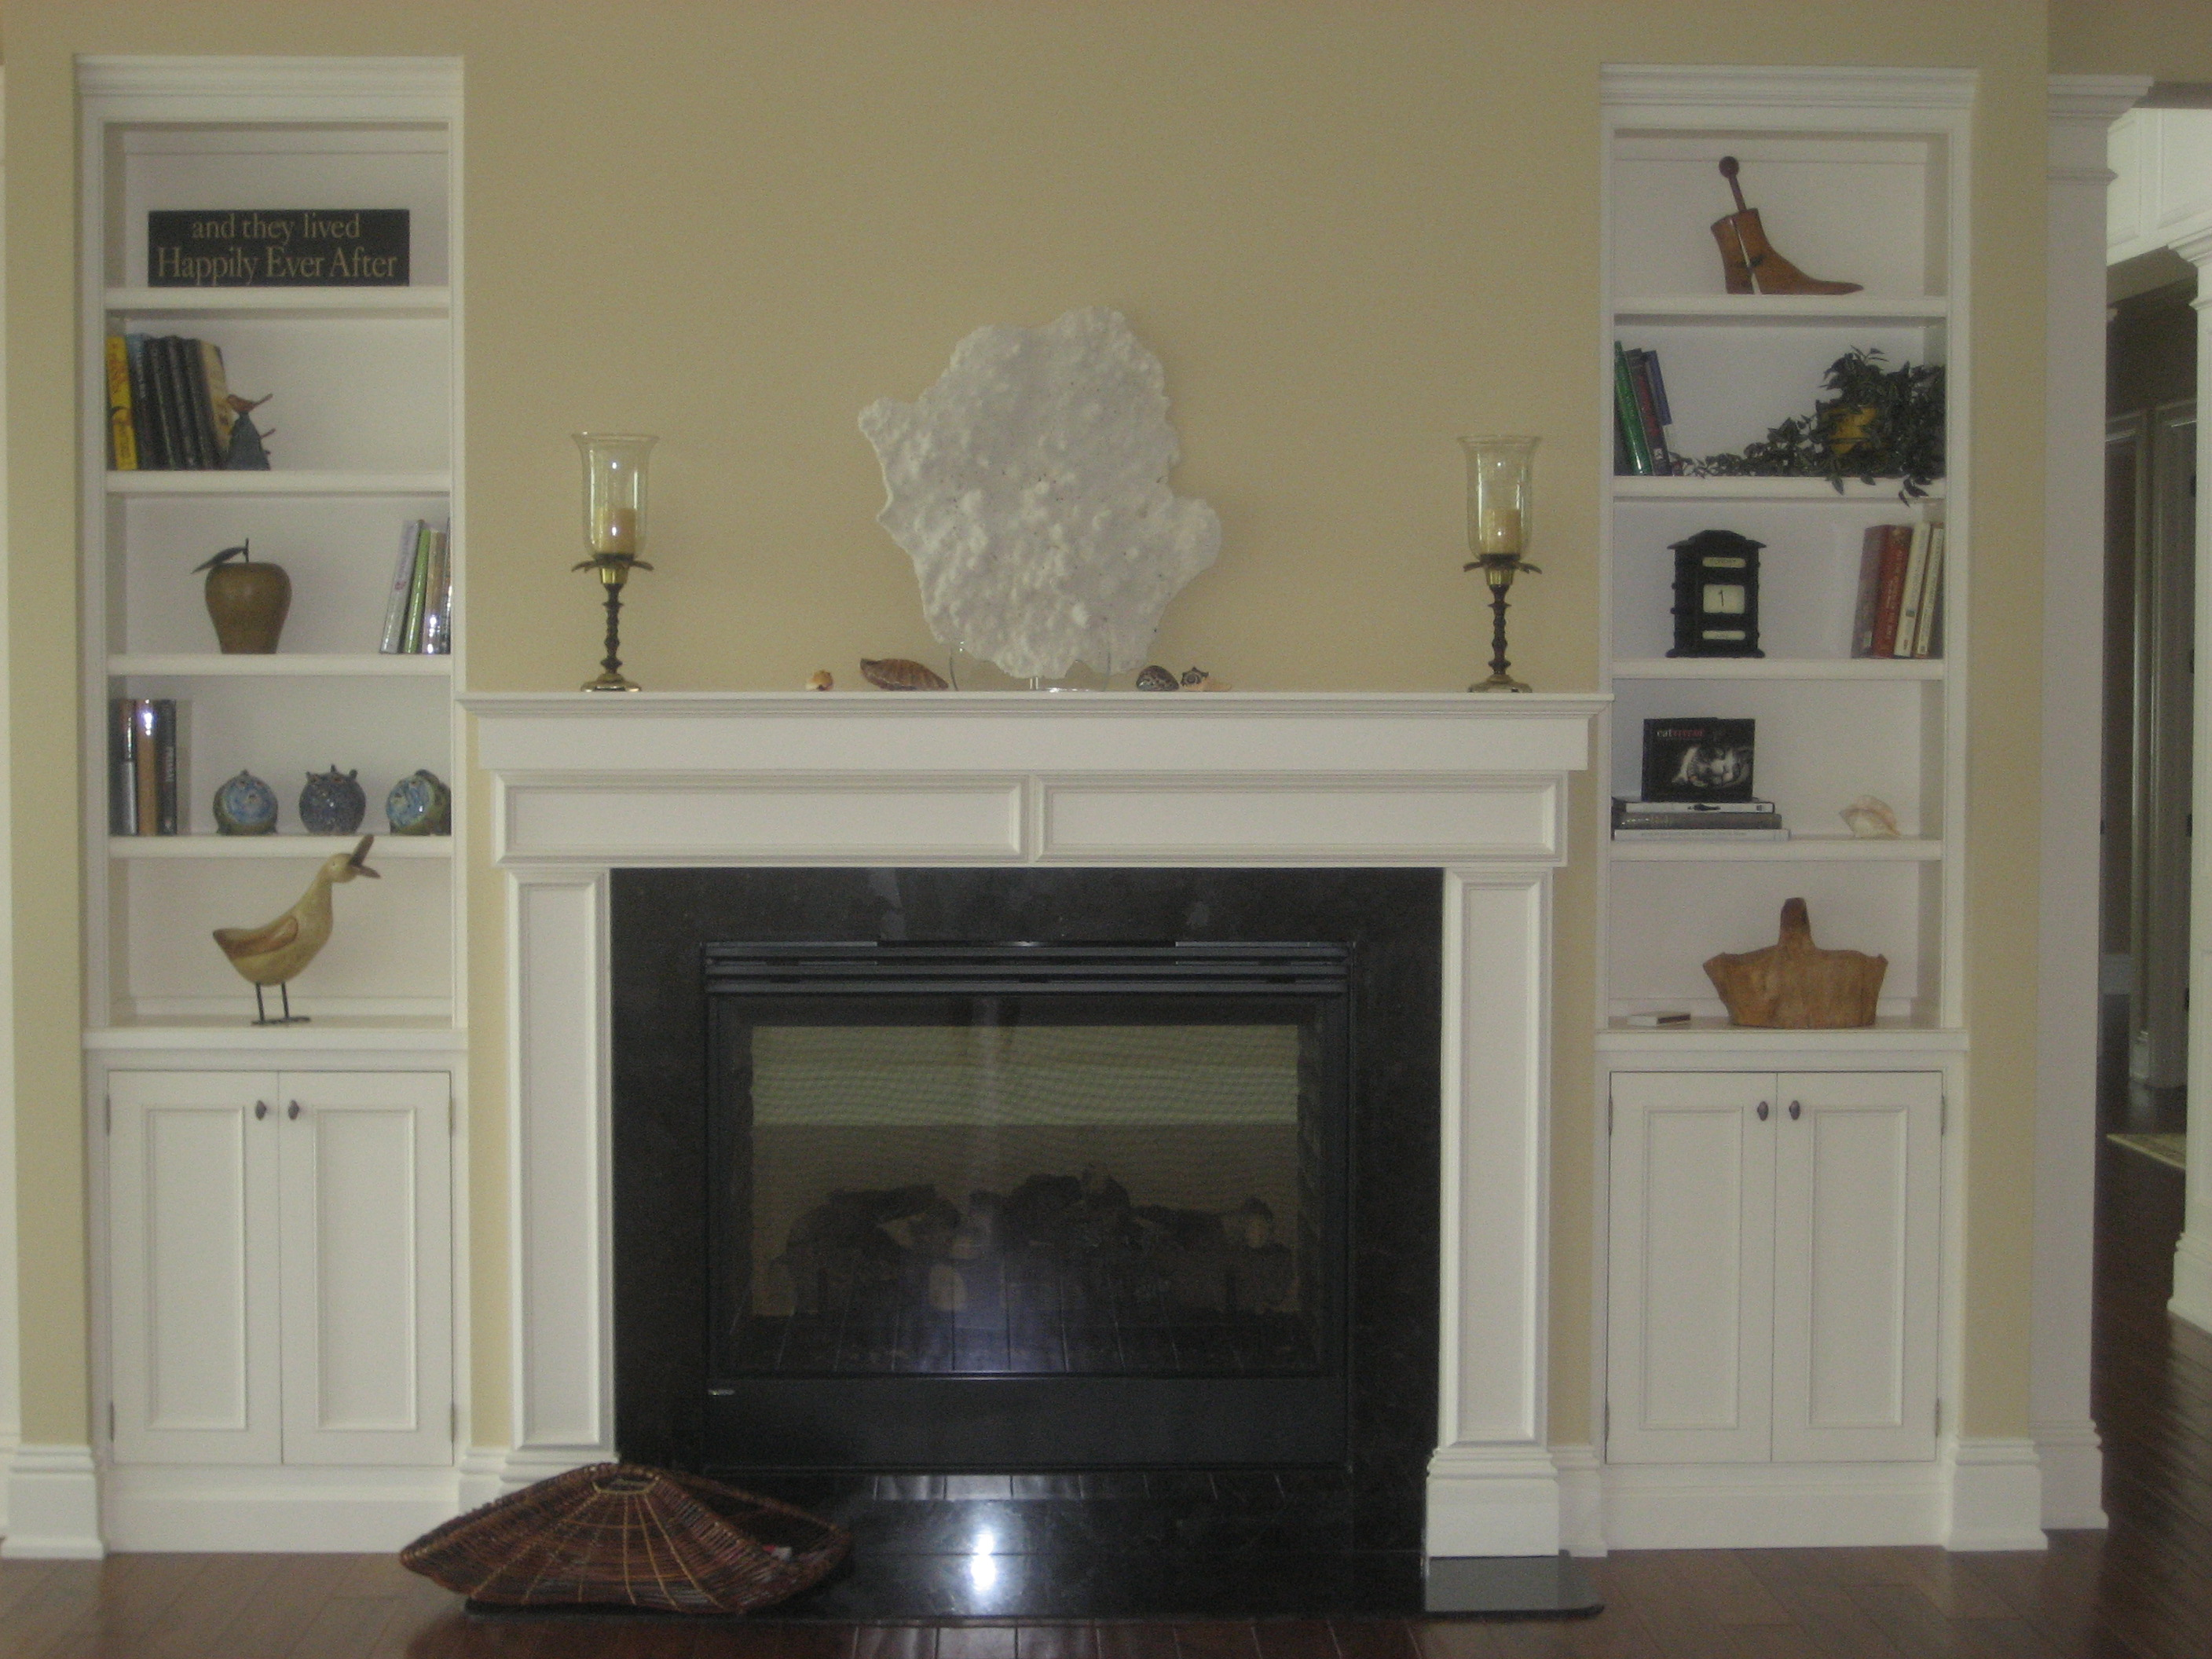 fireplace excellent mantel shelf for mantels distressed wood how install mantle shelving custom tops floating white coat and shoe rack combo bar brackets untreated shelves high